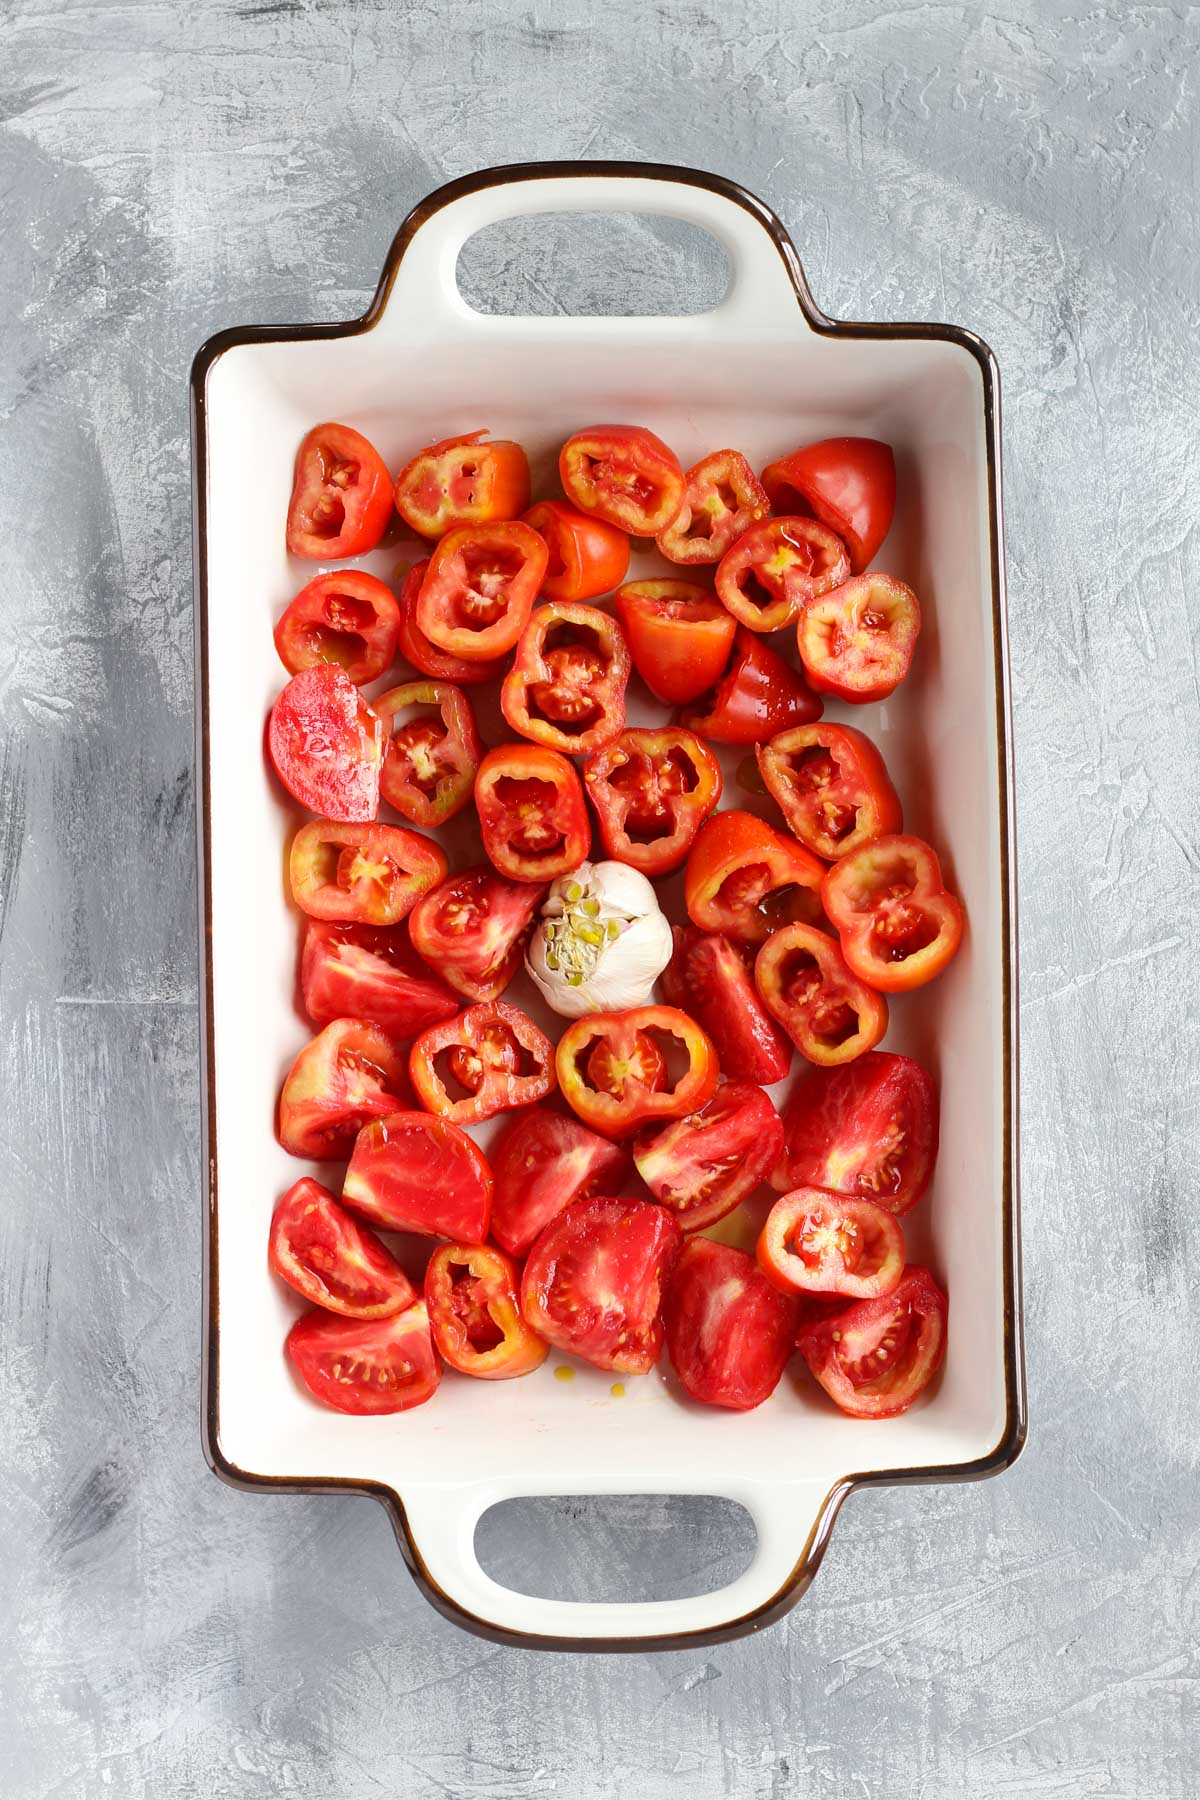 Tomatoes and garlic in a roasting pan.